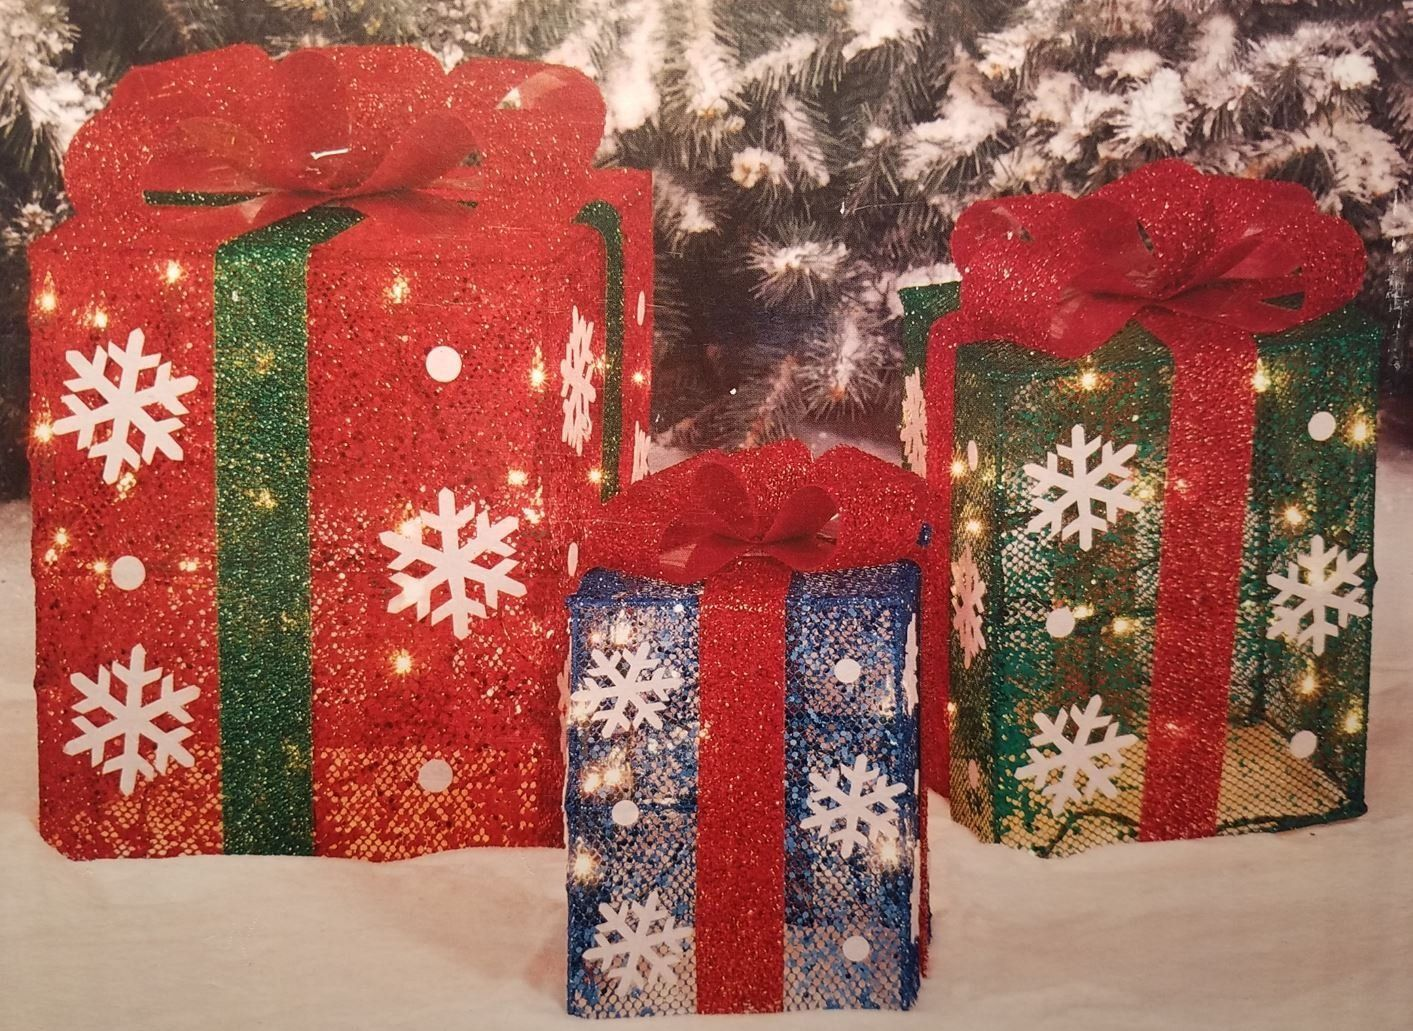 light up gift boxes set of 3 outdoor christmas decorations 14 12 and 10 boxes with ribbon and snowflakes 70 lights attached to frame